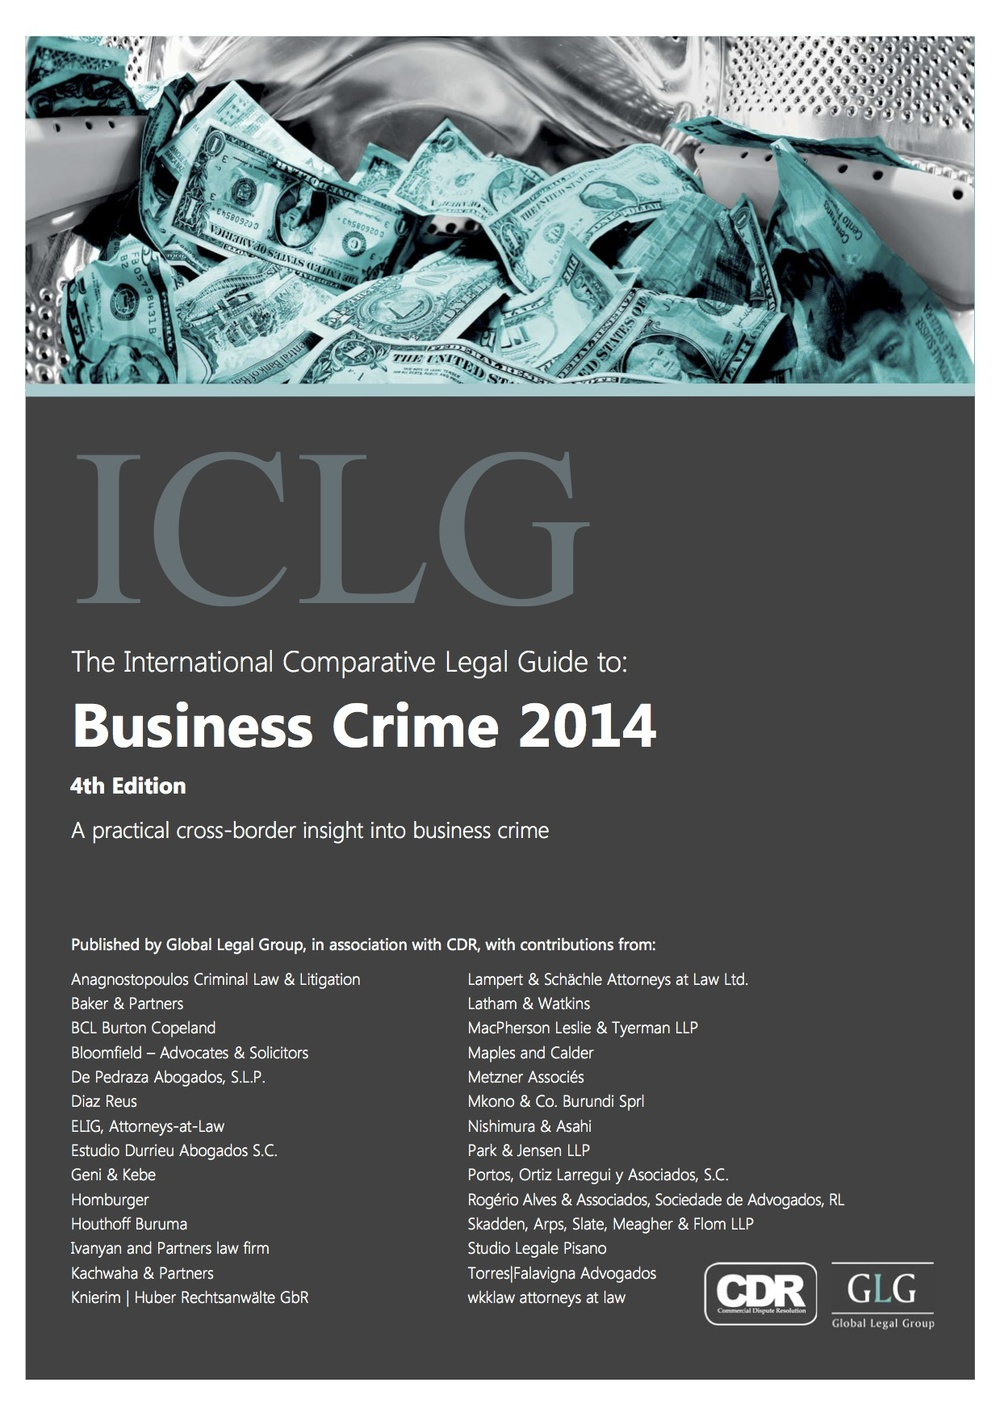 ICLG Business Crime .jpg